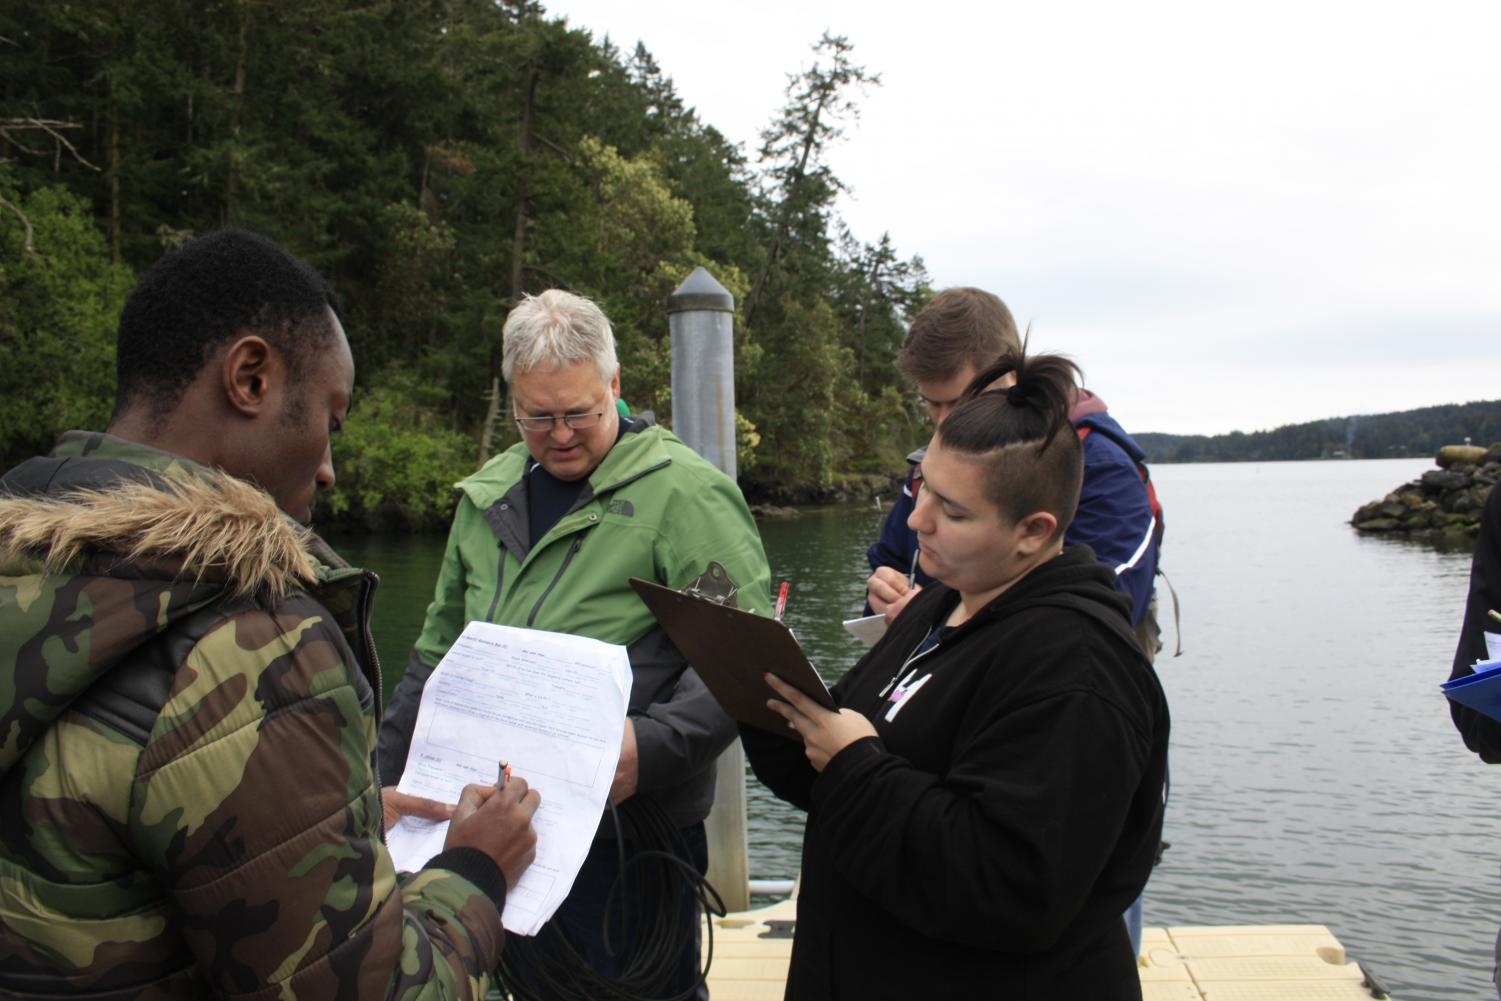 Students conduct lab work on a field trip to Orcas Island for Geography 205